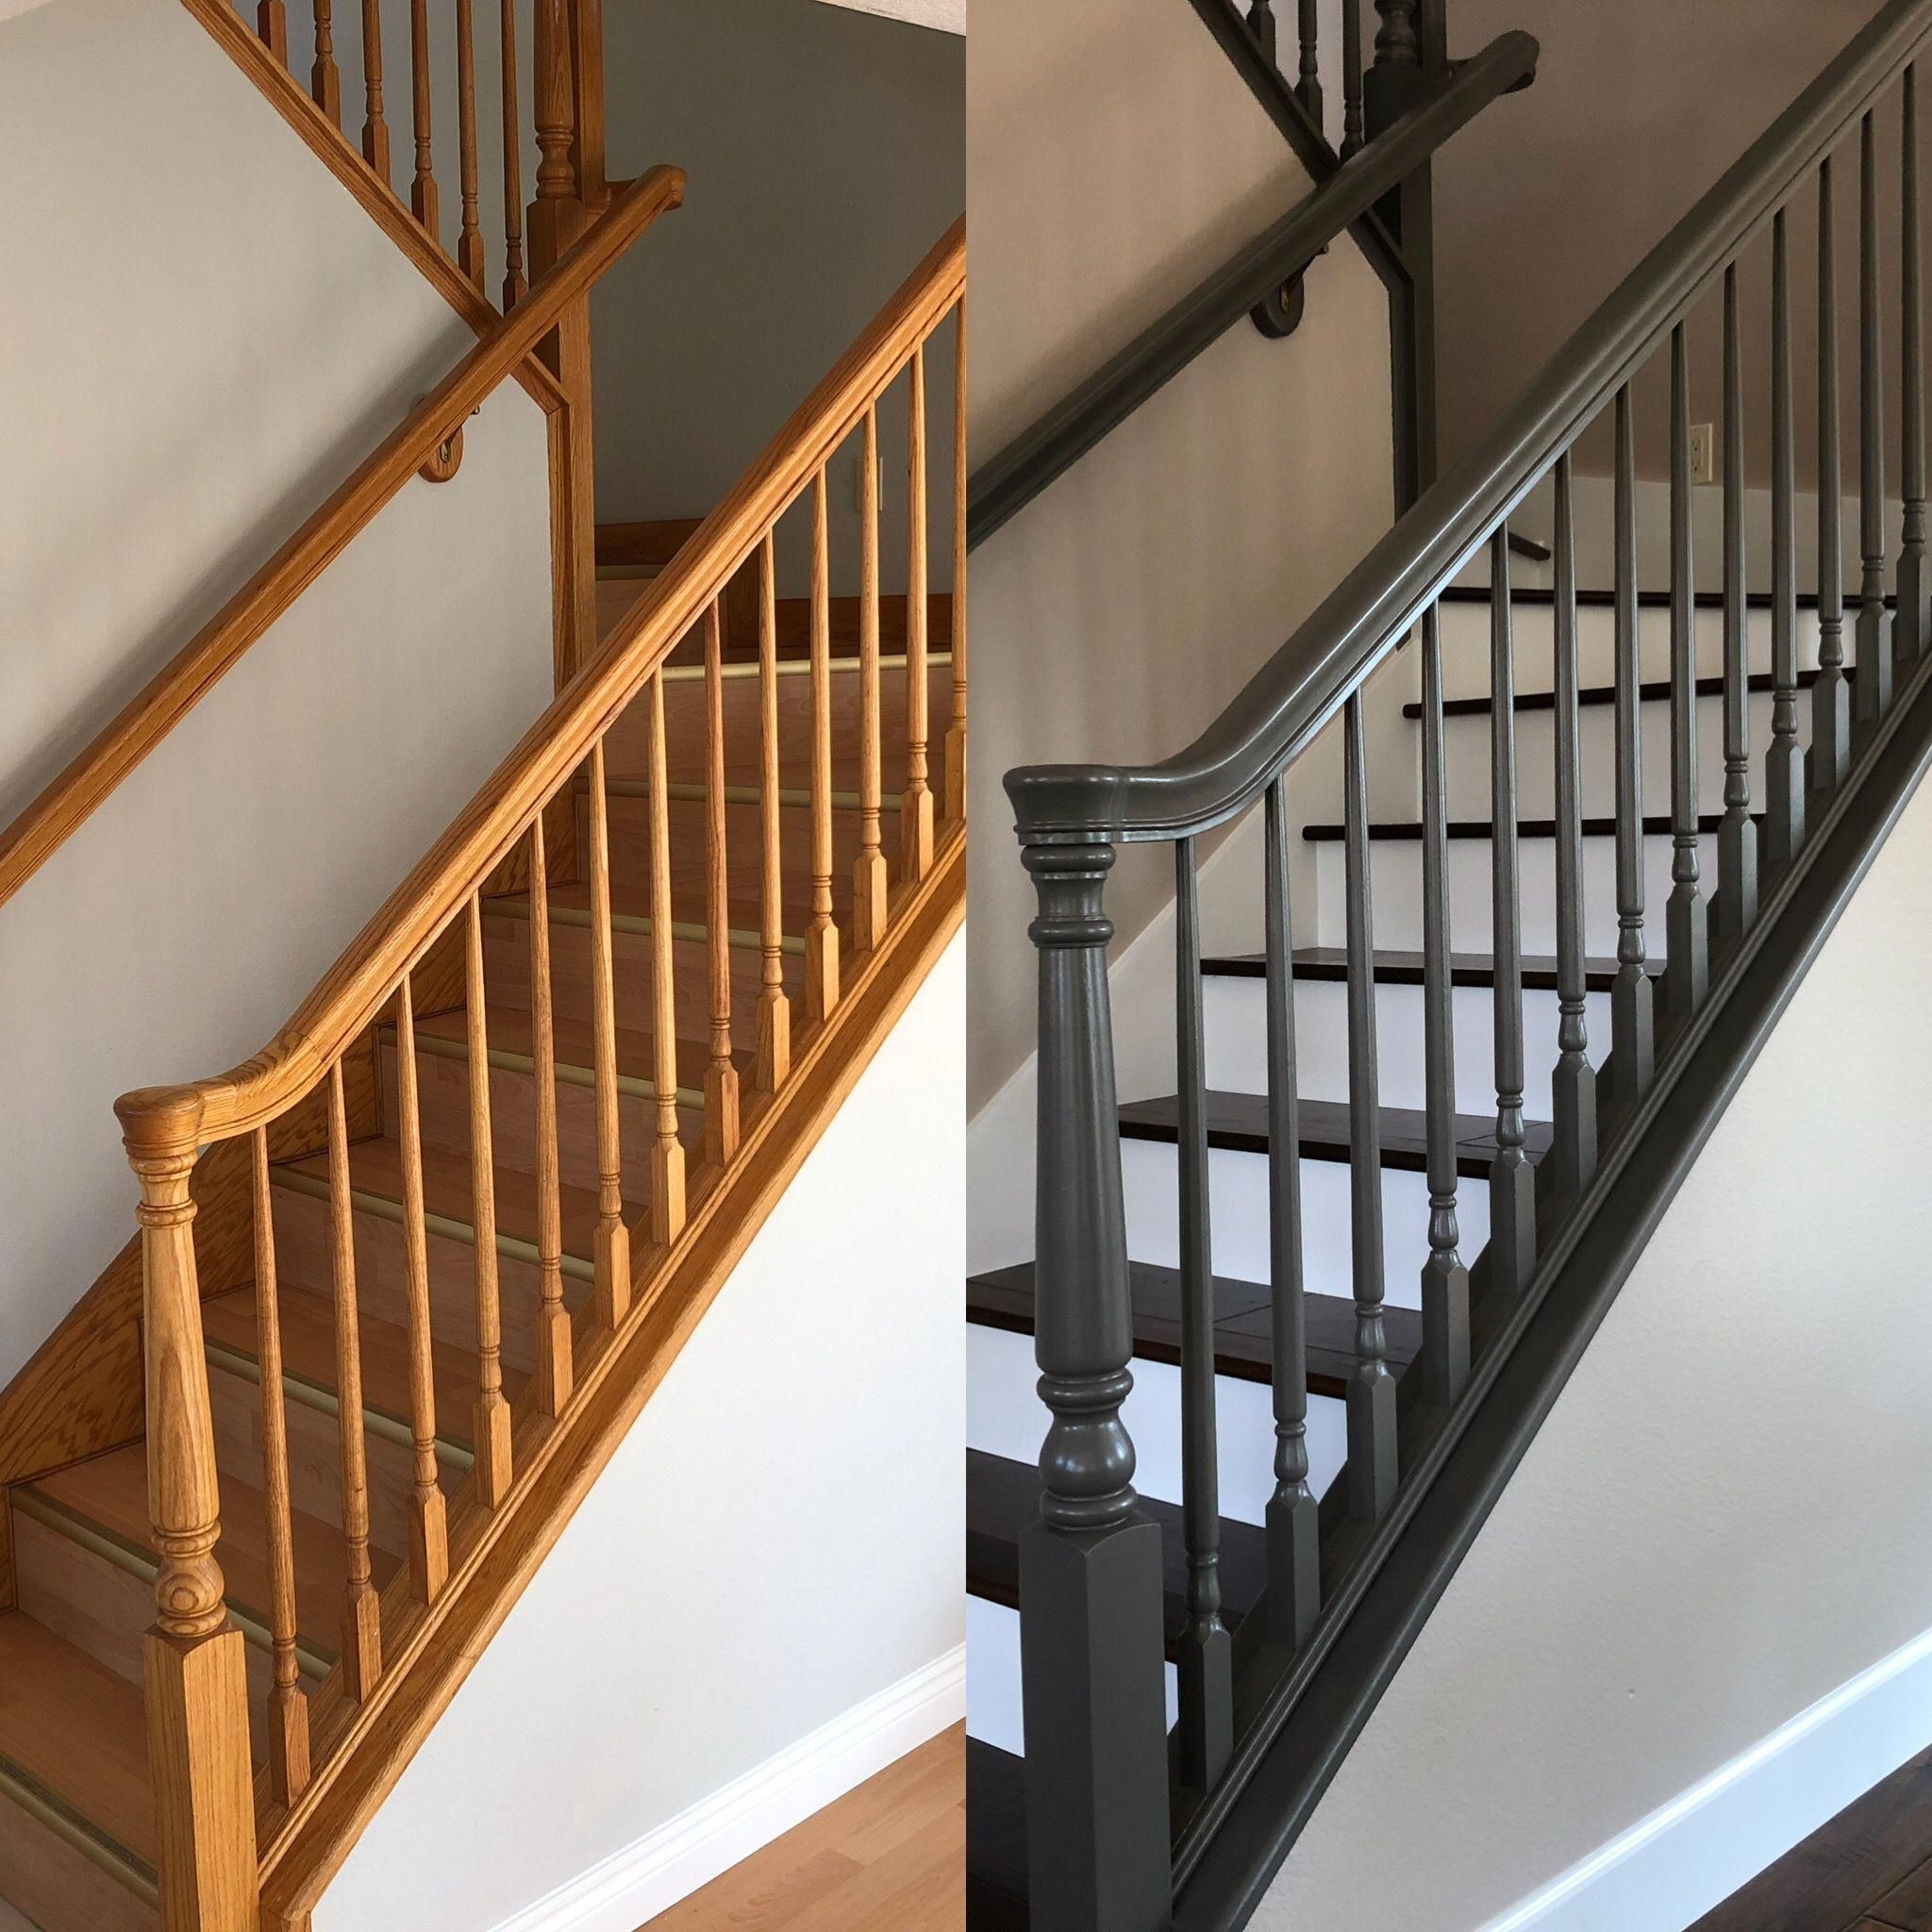 Before And After Pictures Of What Your Staircase Could Look Like